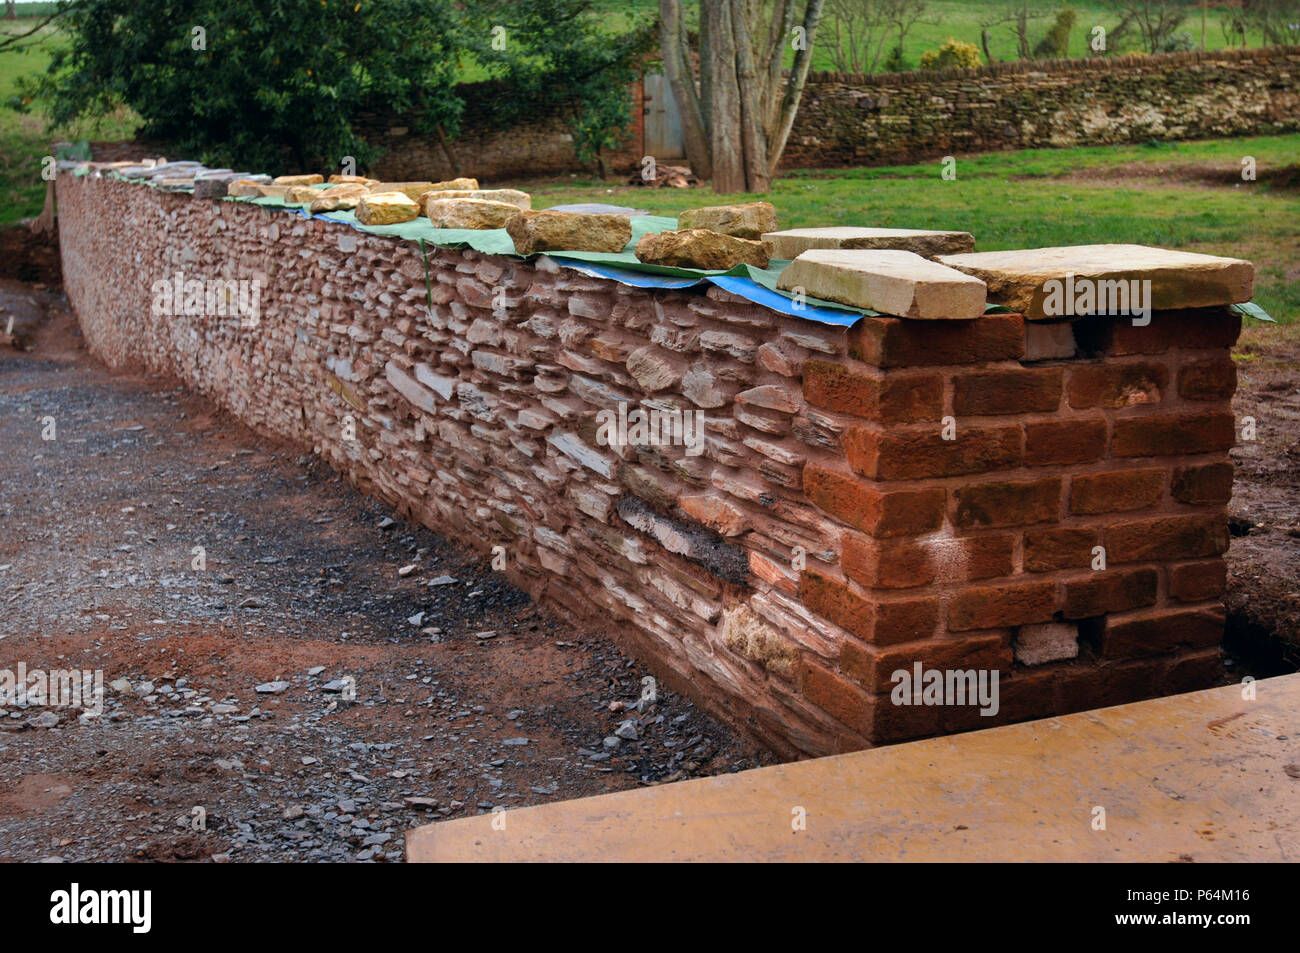 A half finished traditional morte slate wall waiting for coping stones at Halswell House near Bridgewater, Somerset, UK - Stock Image